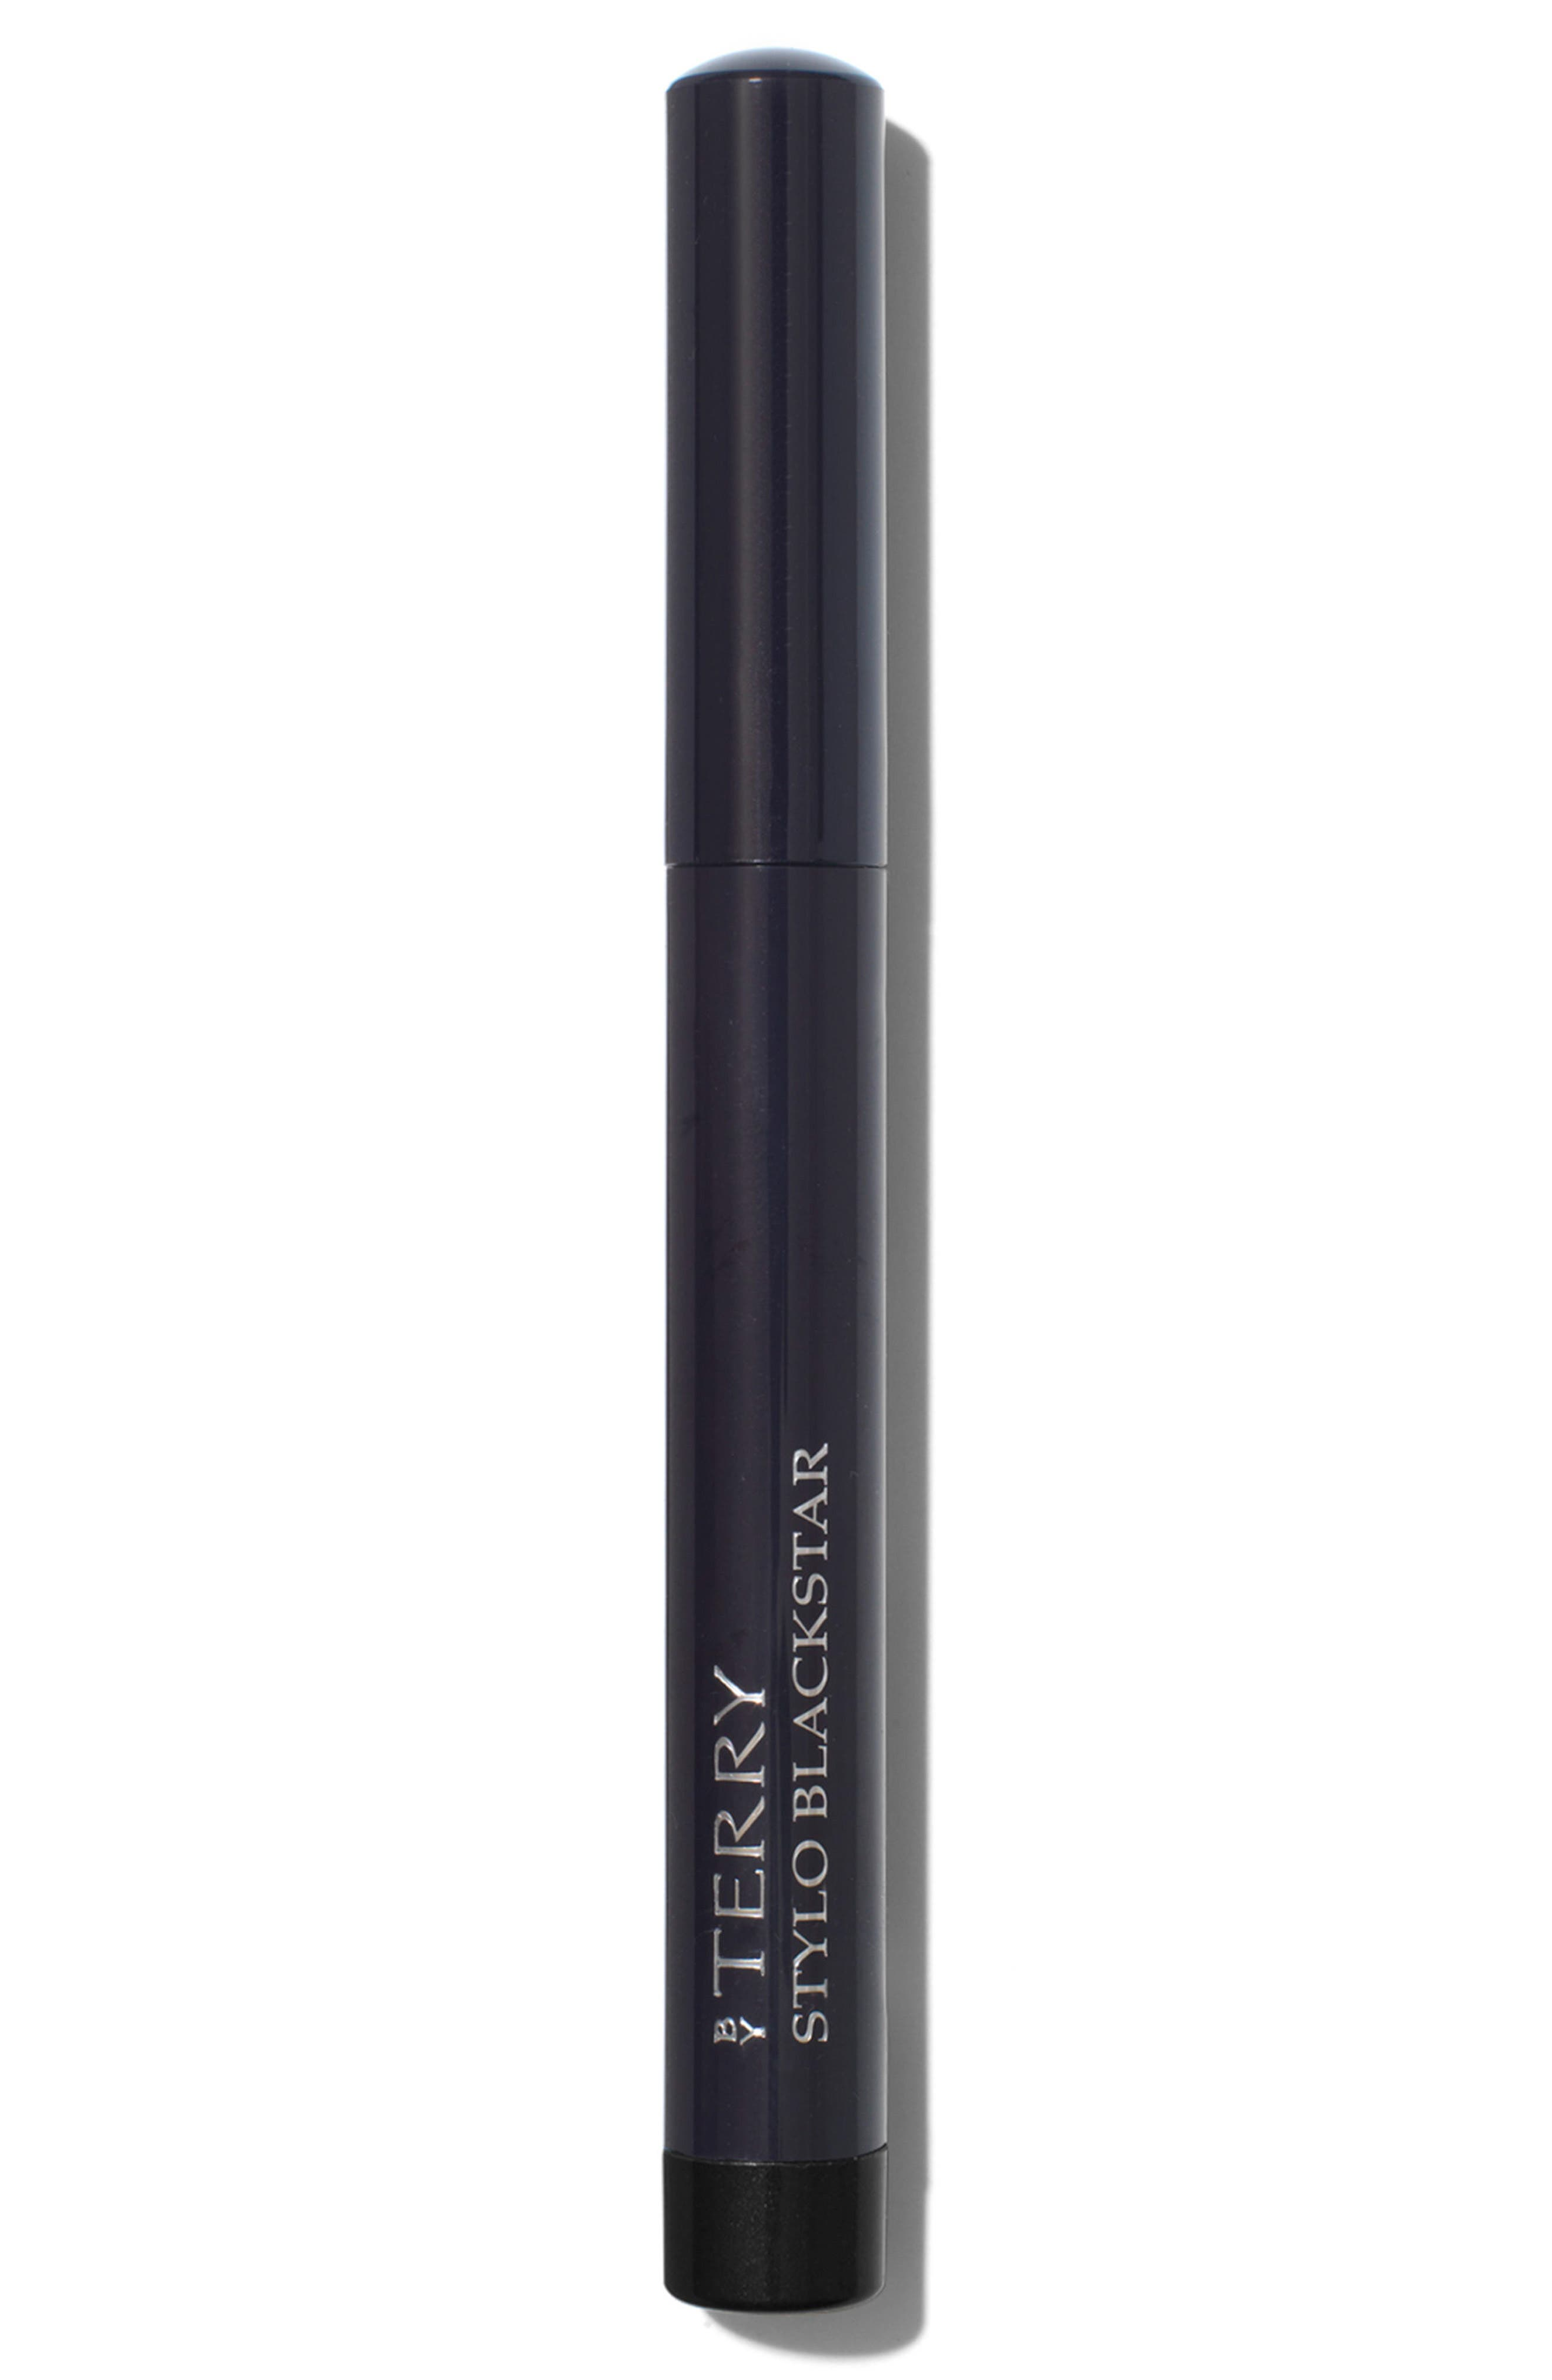 SPACE.NK.apothecary By Terry Stylo Blackstar Waterproof 3-in-1 Eye Pencil,                             Alternate thumbnail 2, color,                             1  SMOKY BLACK